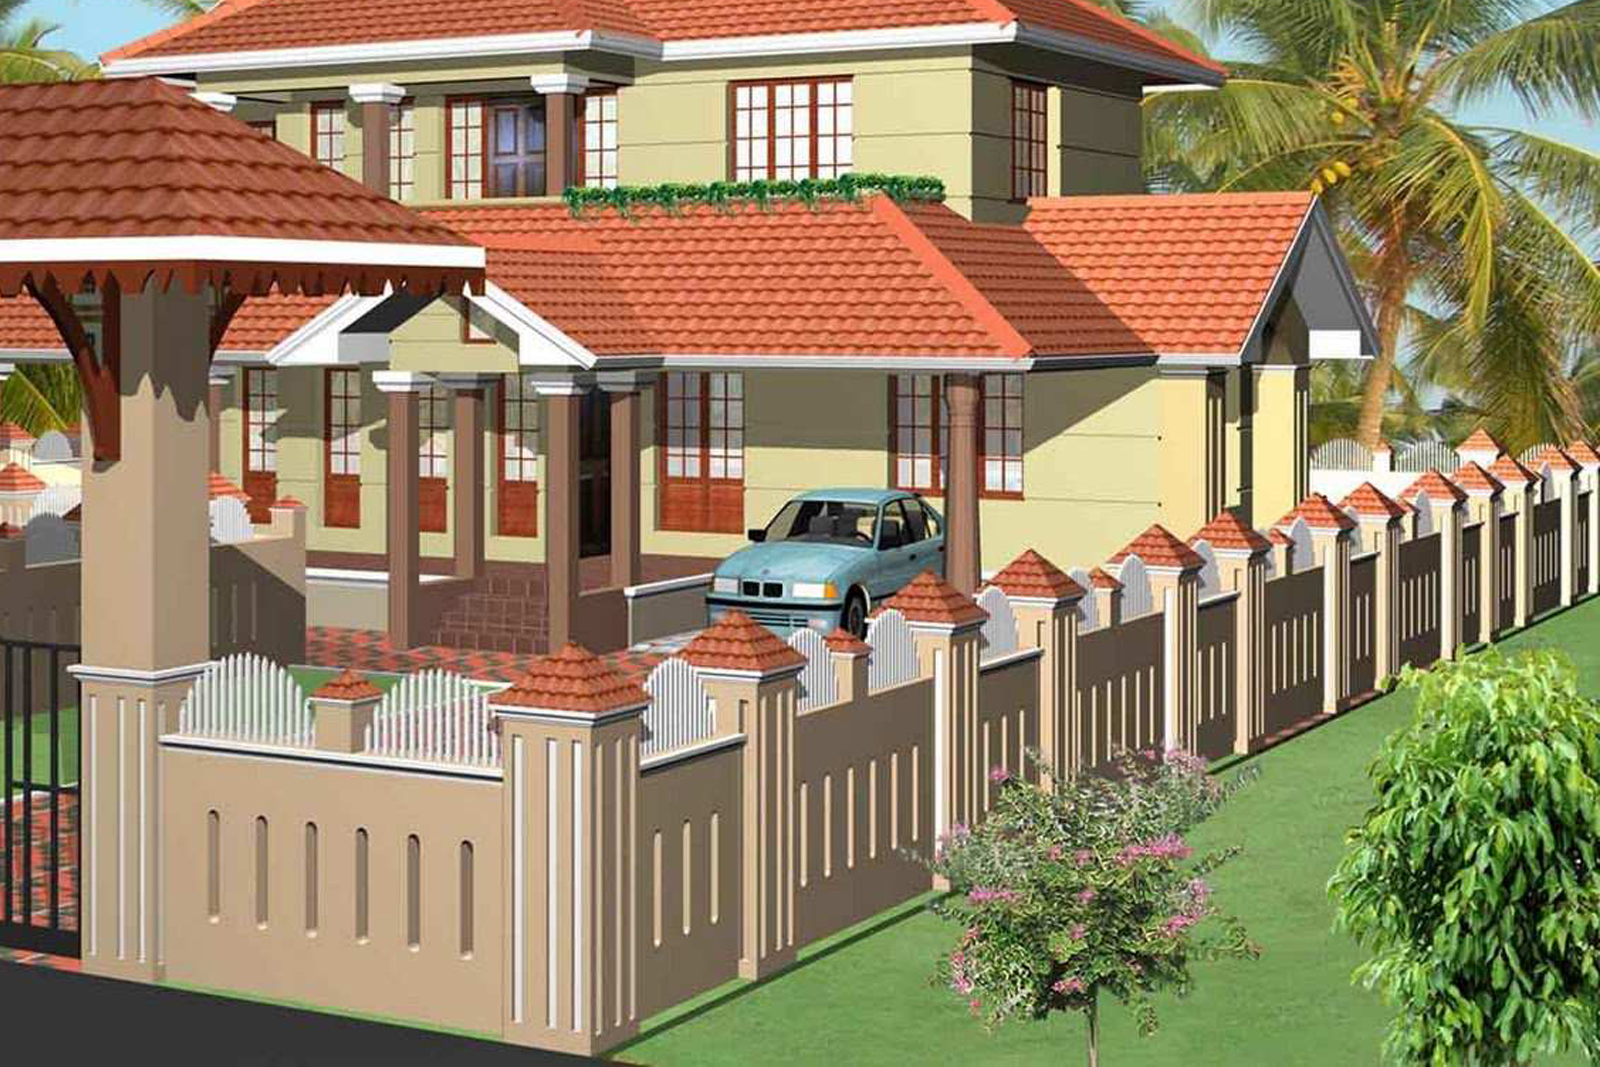 Design Of Compound Wall Gate : Keralahousedesigner design concepts for gate and